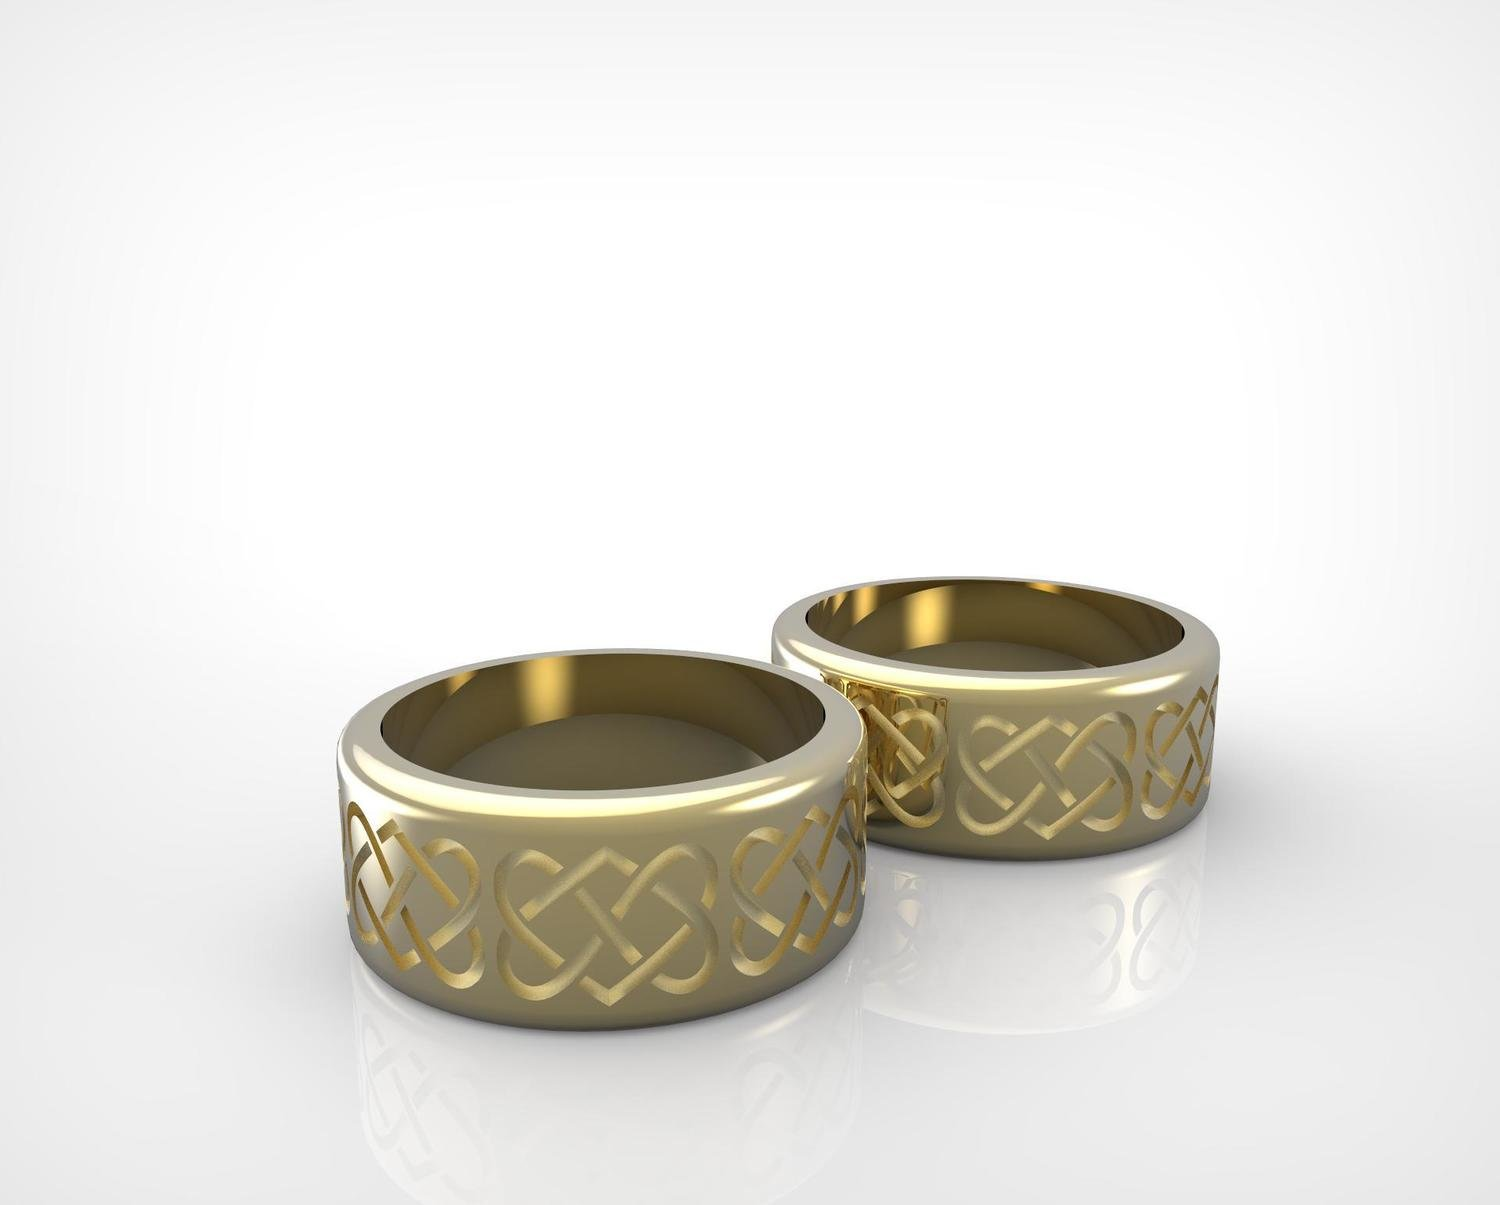 3D Model of Custom Wedding Ring